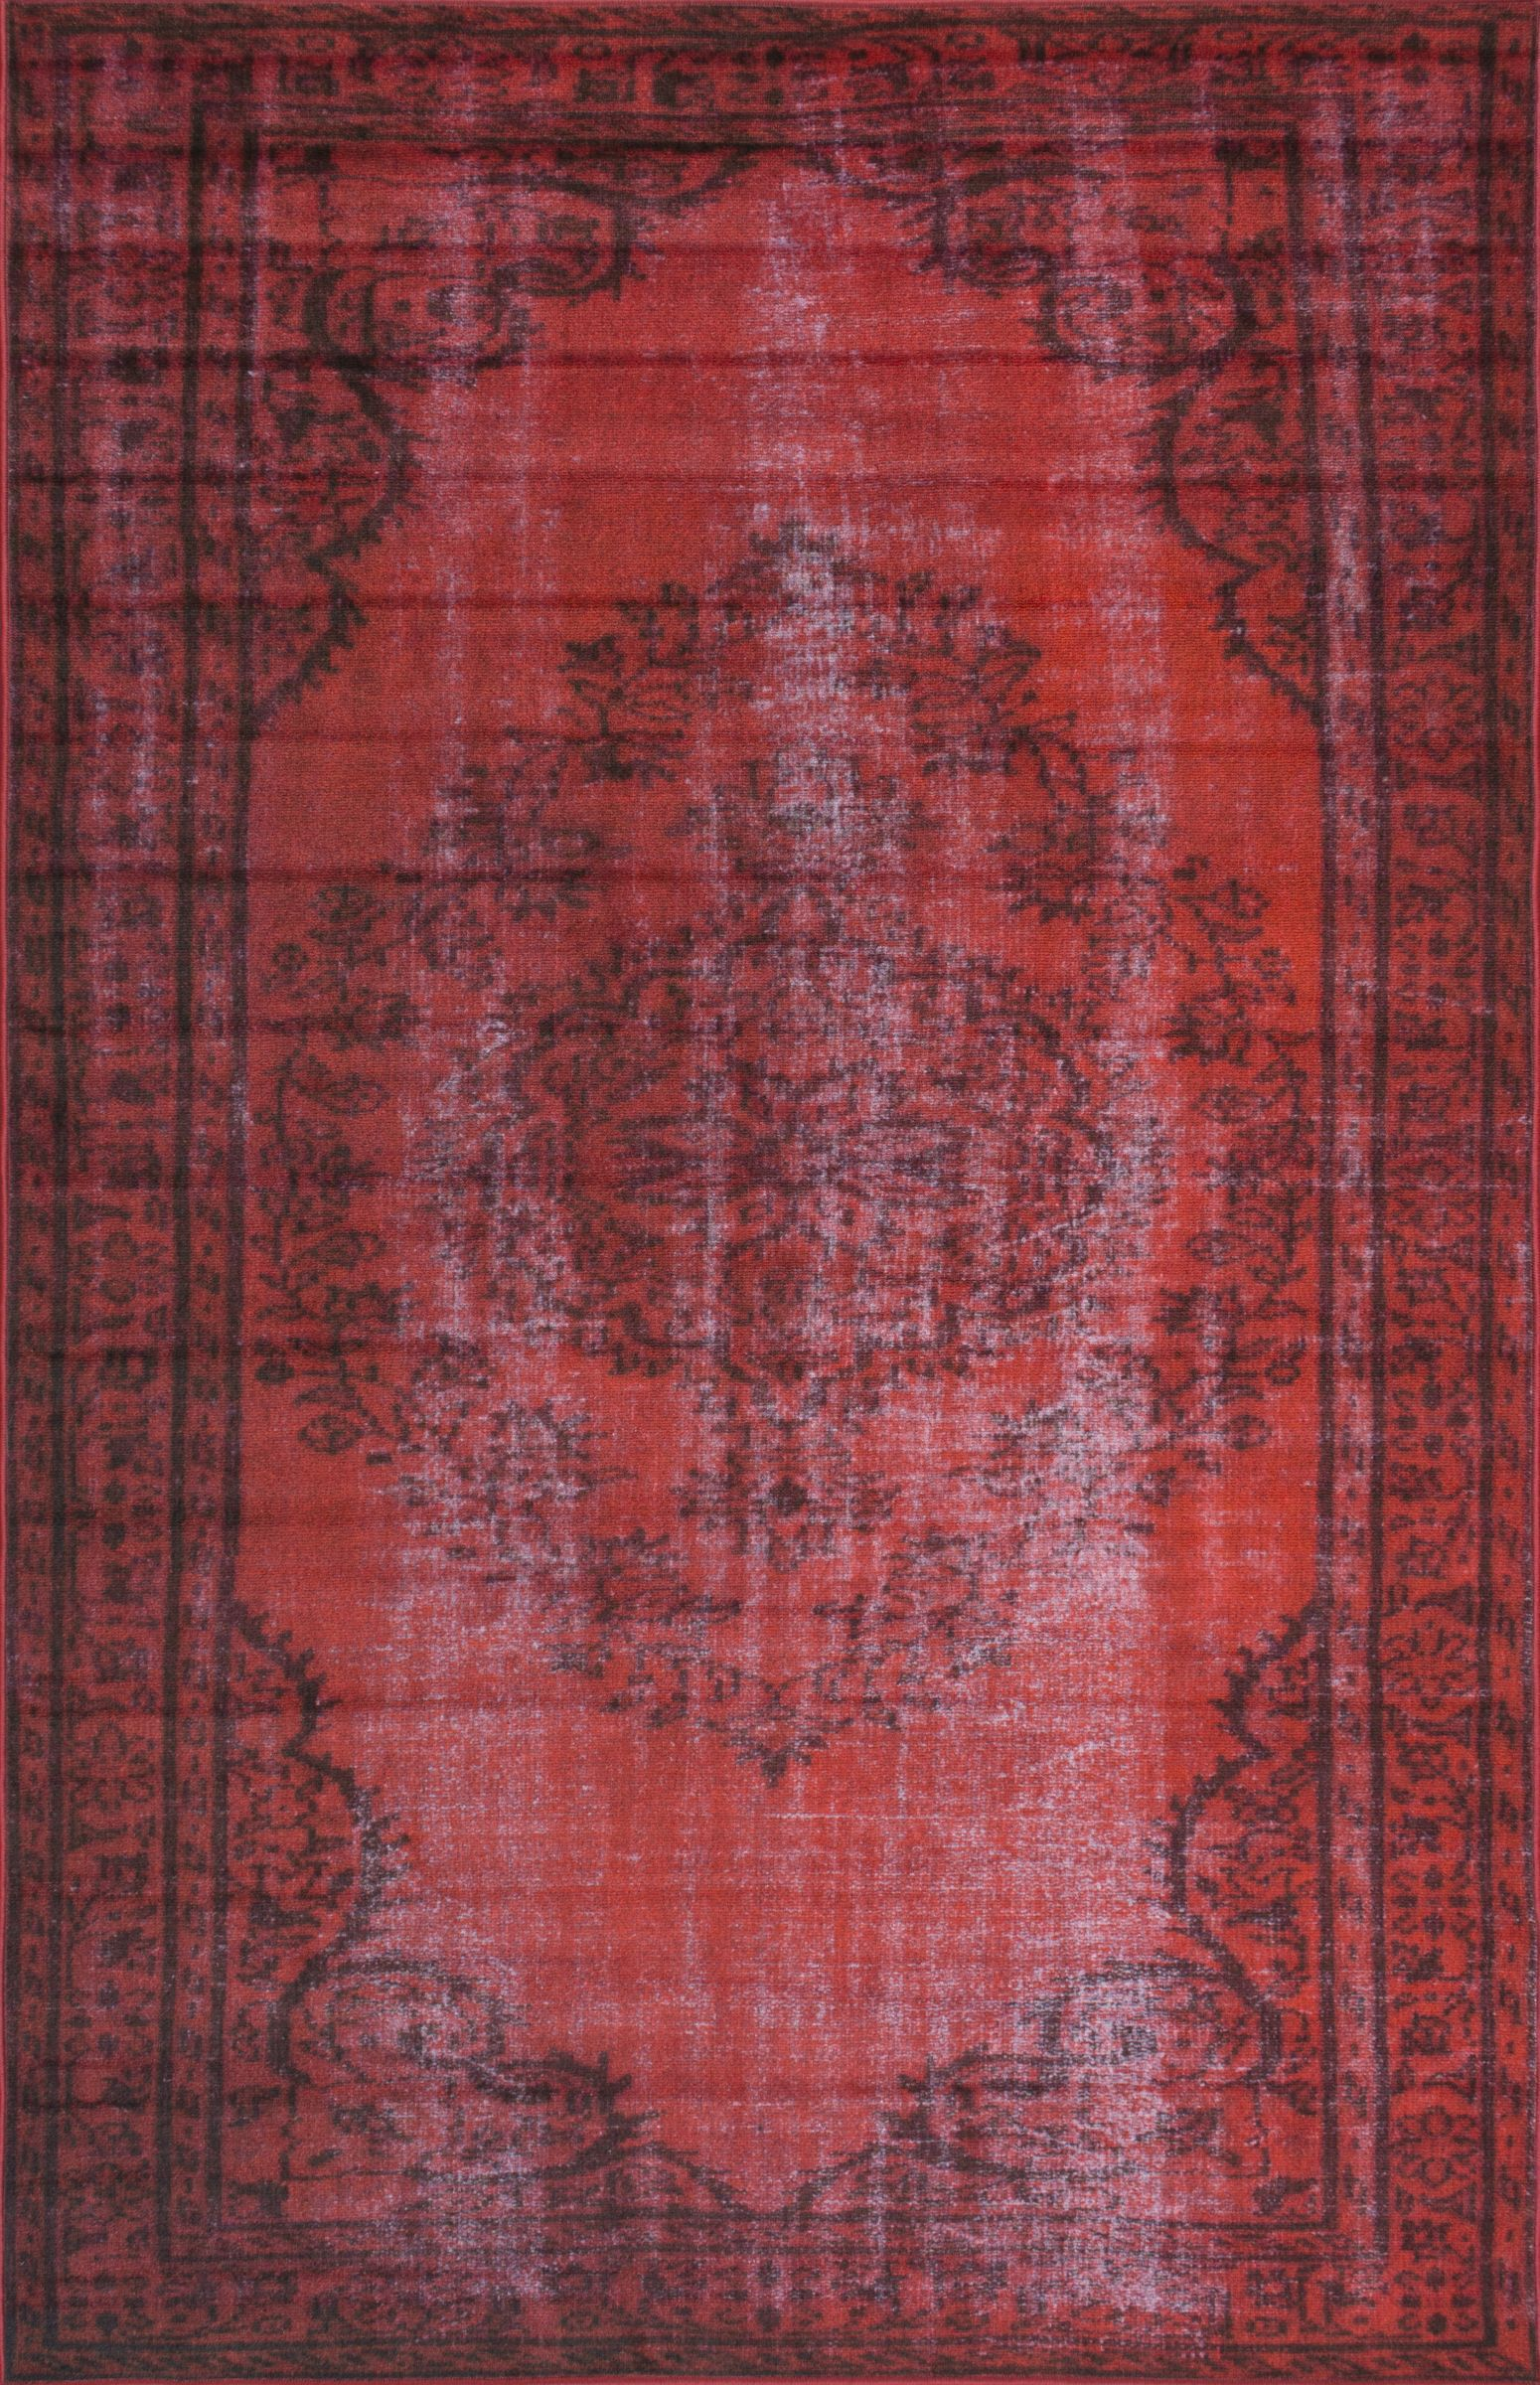 Seekonk Red Area Rug Rug Size: Rectangle 4' x 6'